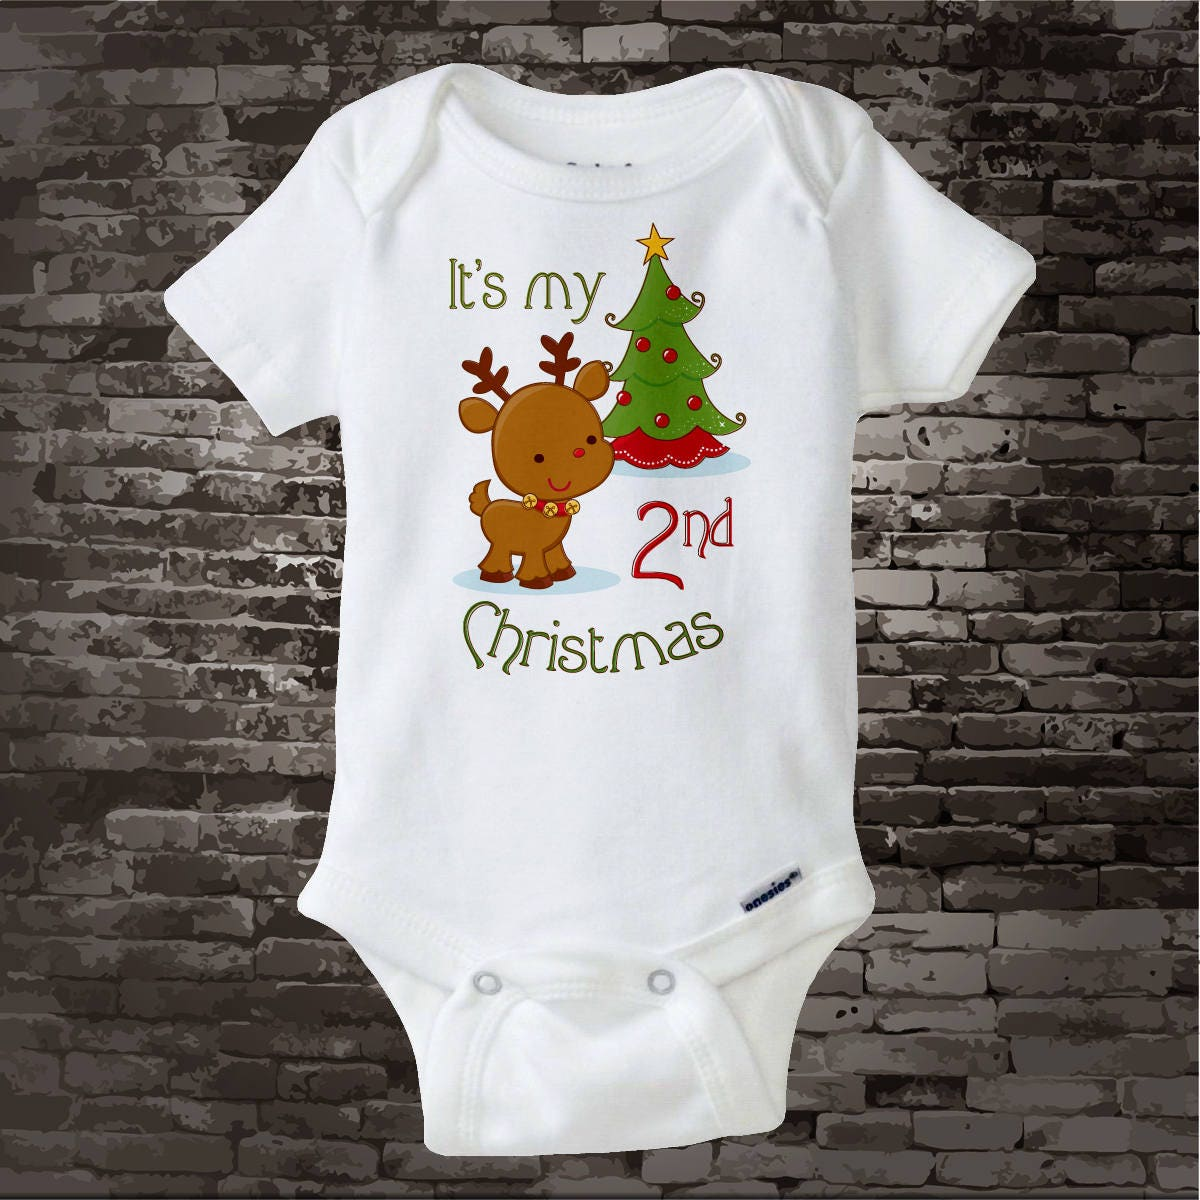 Kids Christmas Outfit baby\'s second Christmas baby | Etsy